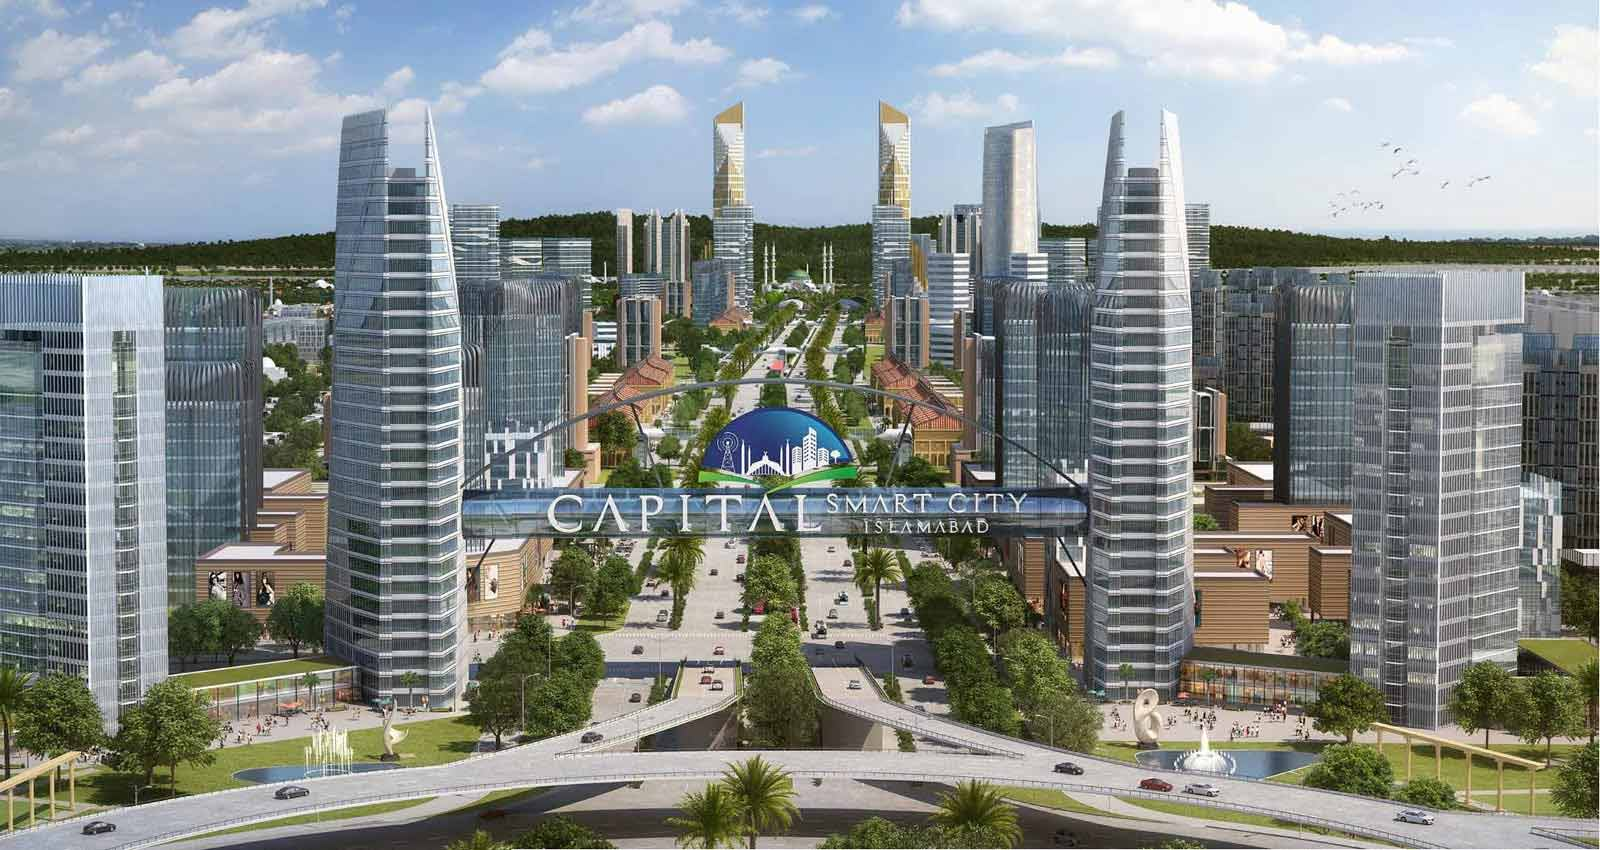 5 Marla Plot available for SALE in Capital Smart City Islamabad